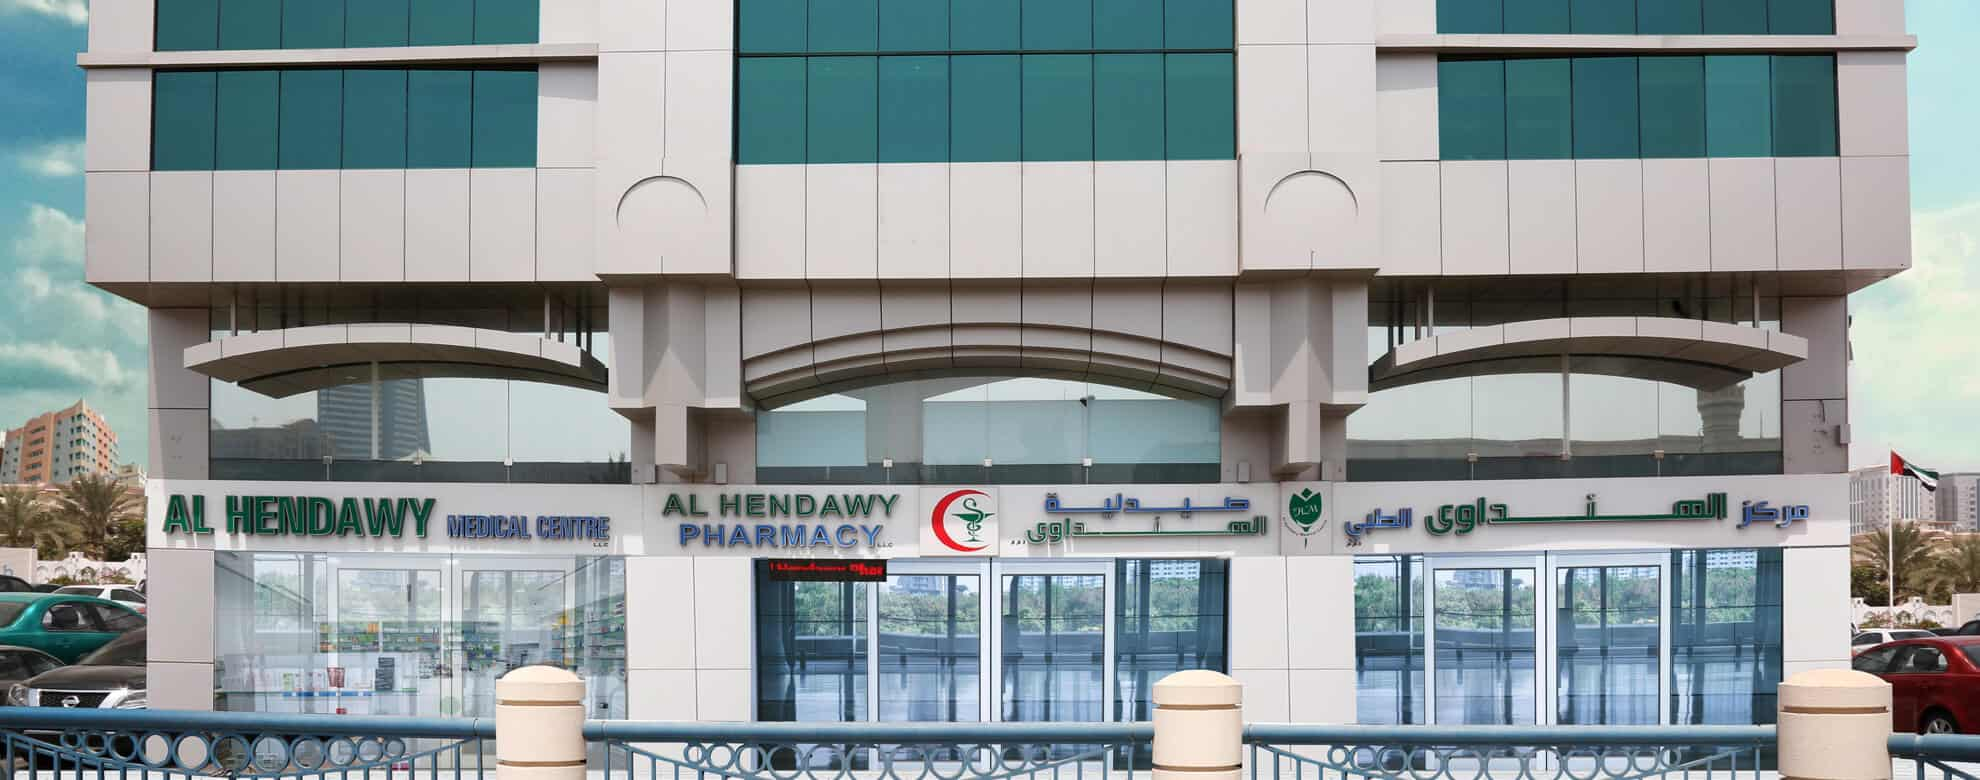 Al Hendawy Medical Center